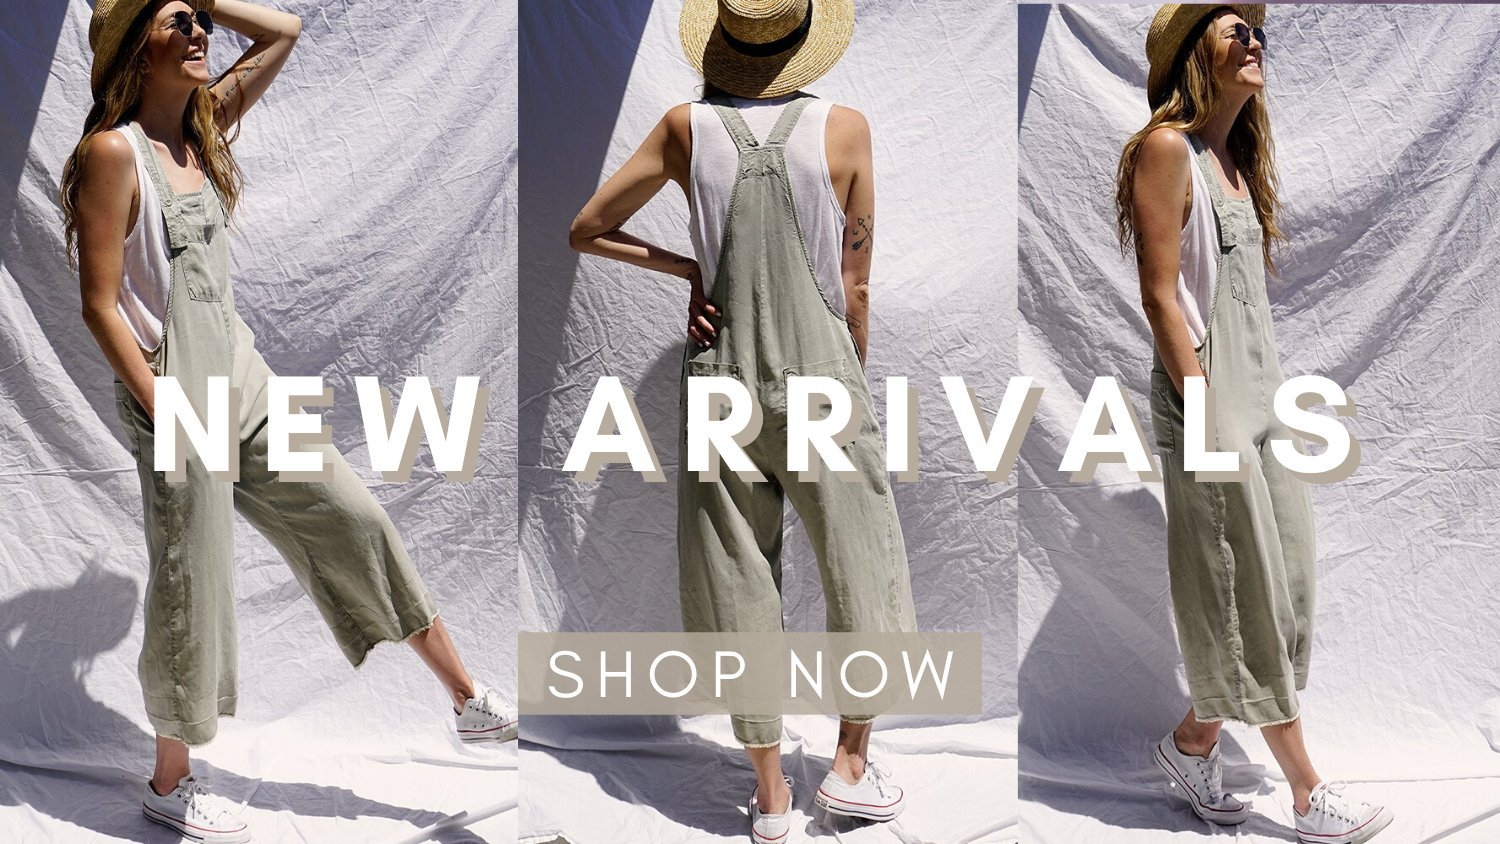 New arrivals for summer are here. Shop matching sets, dresses, jumpsuits, rompers and more.